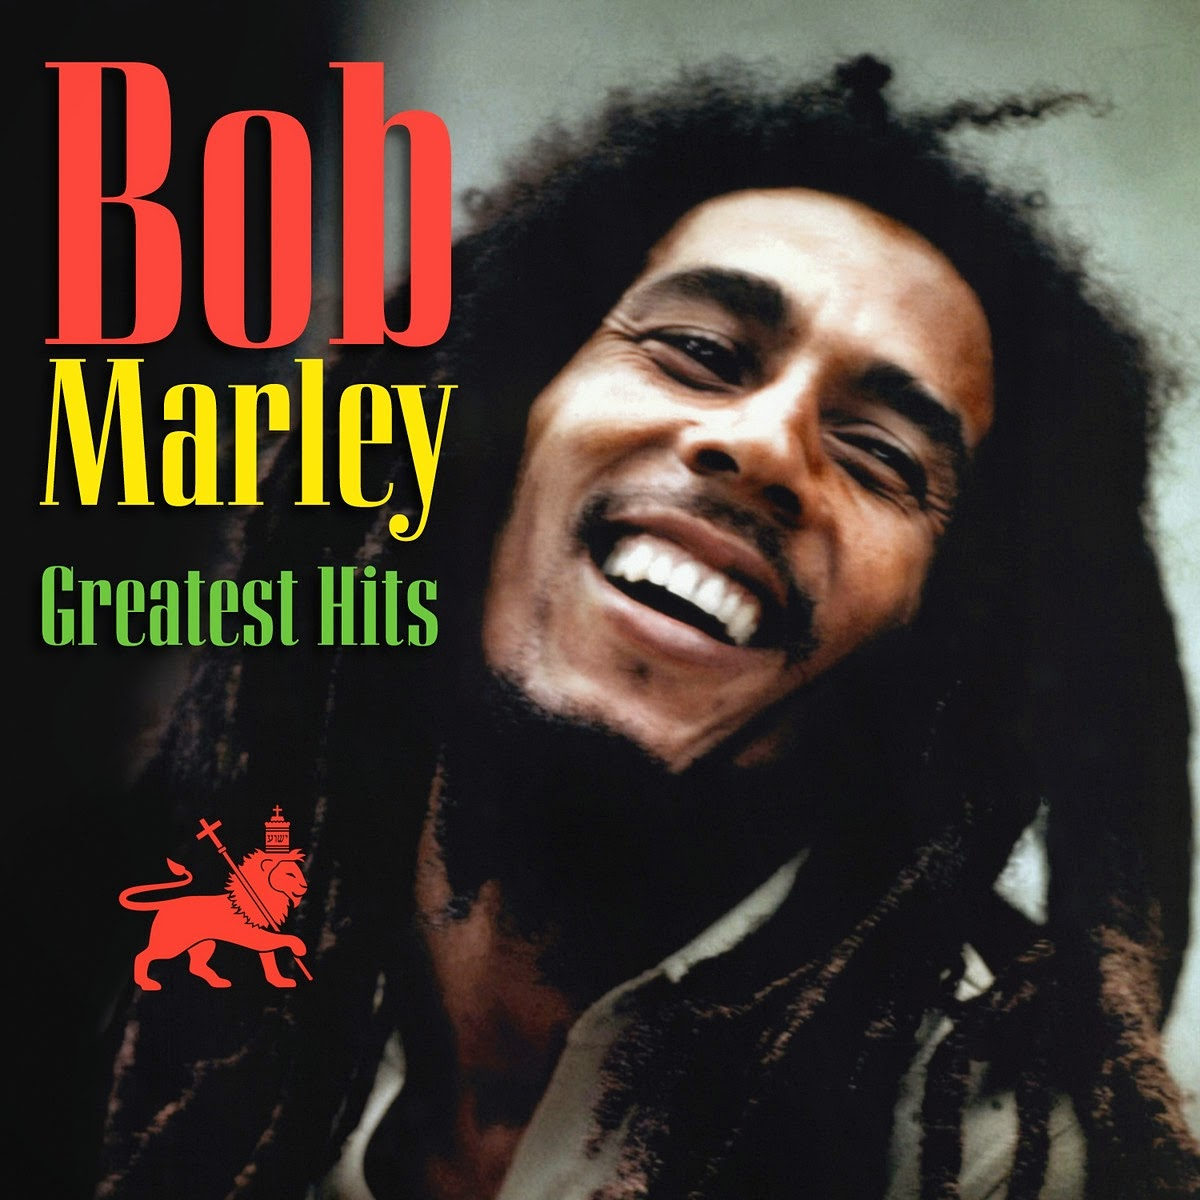 Who Is Bob Marley